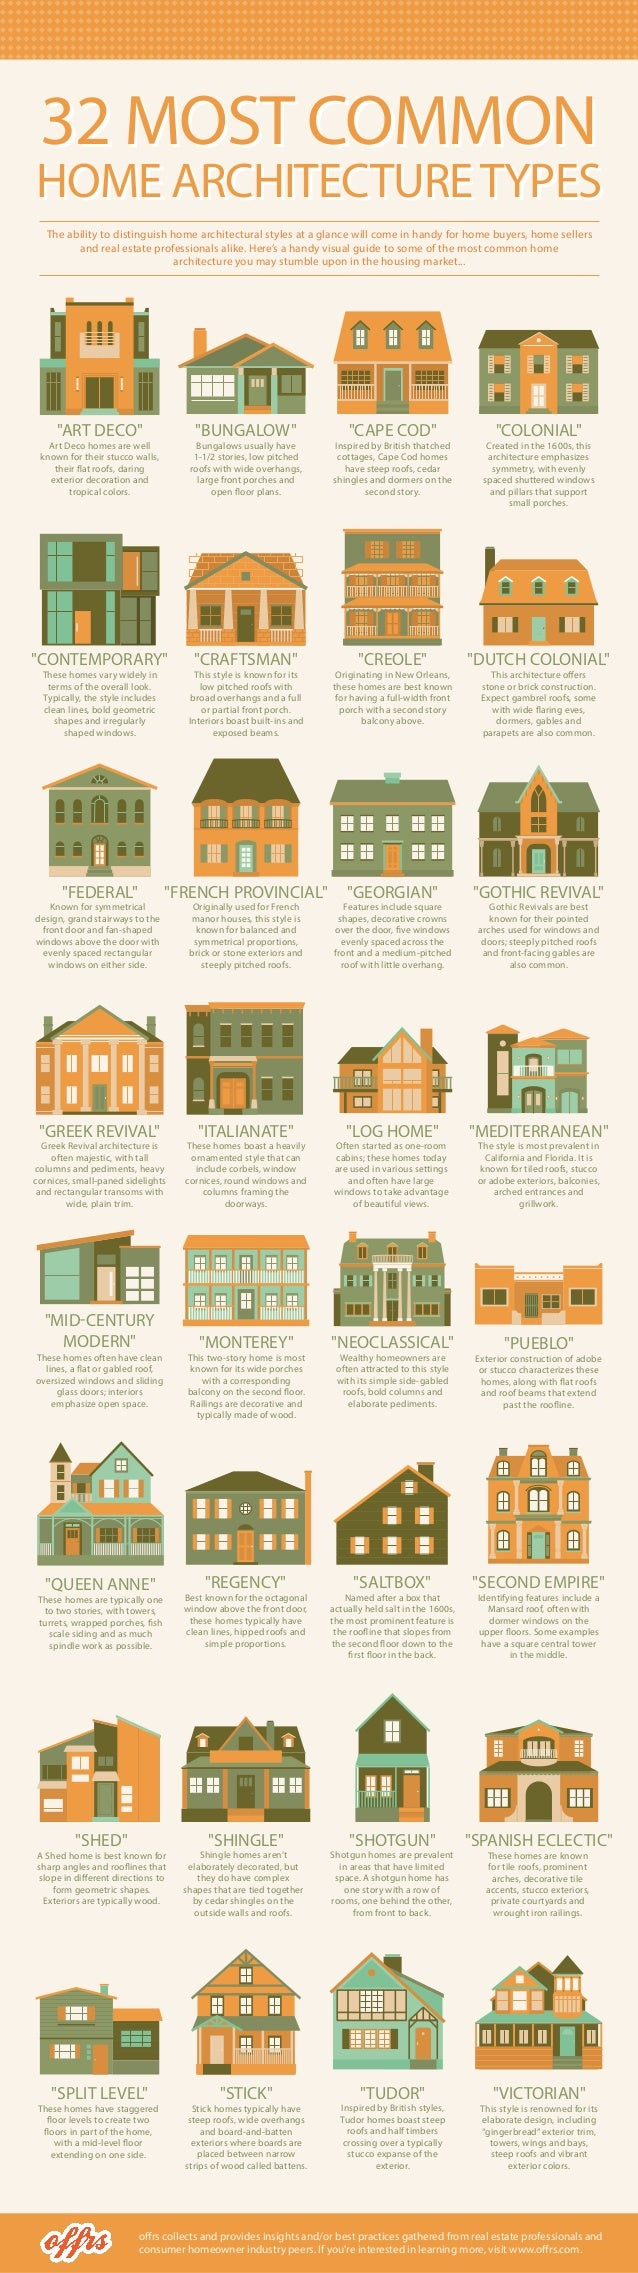 32 MOST COMMON HOME ARCHITECTURETYPES 32 MOST COMMON HOME ARCHITECTURETYPES offrs collects and provides insights and/or be...